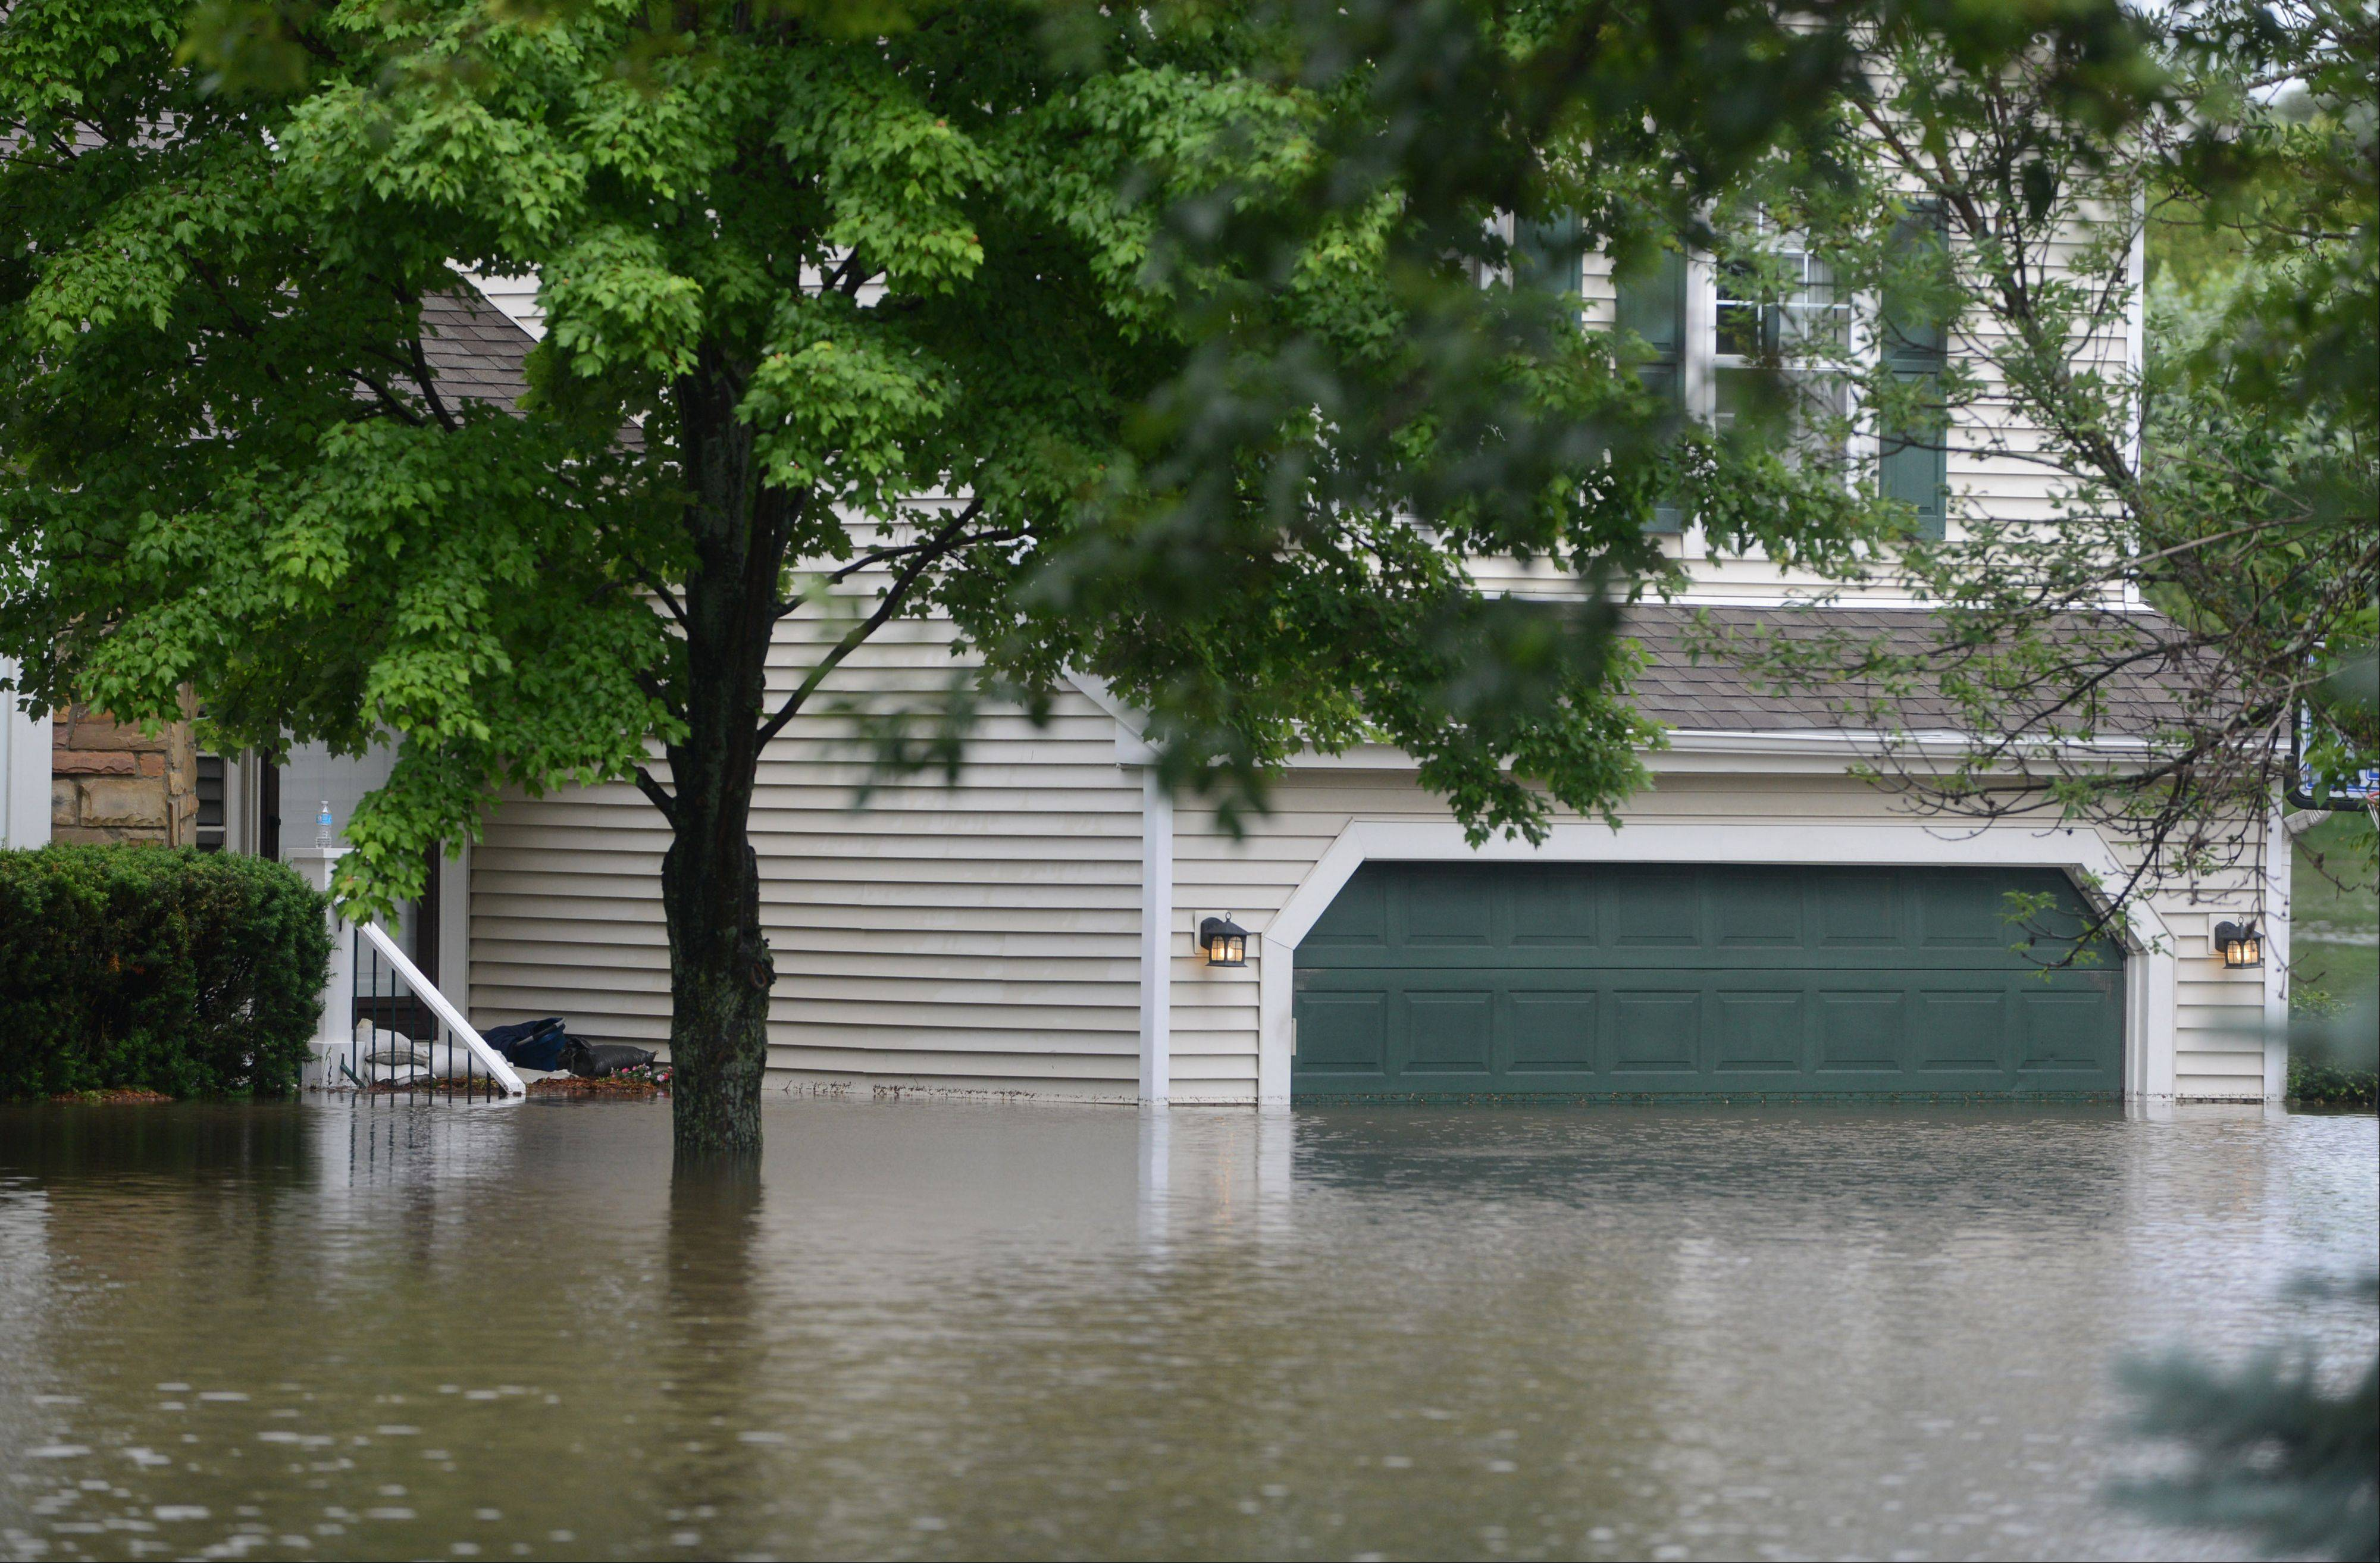 The home of K.C. Faetz is under water on Thistle Lane in Lake Zurich Wednesday.